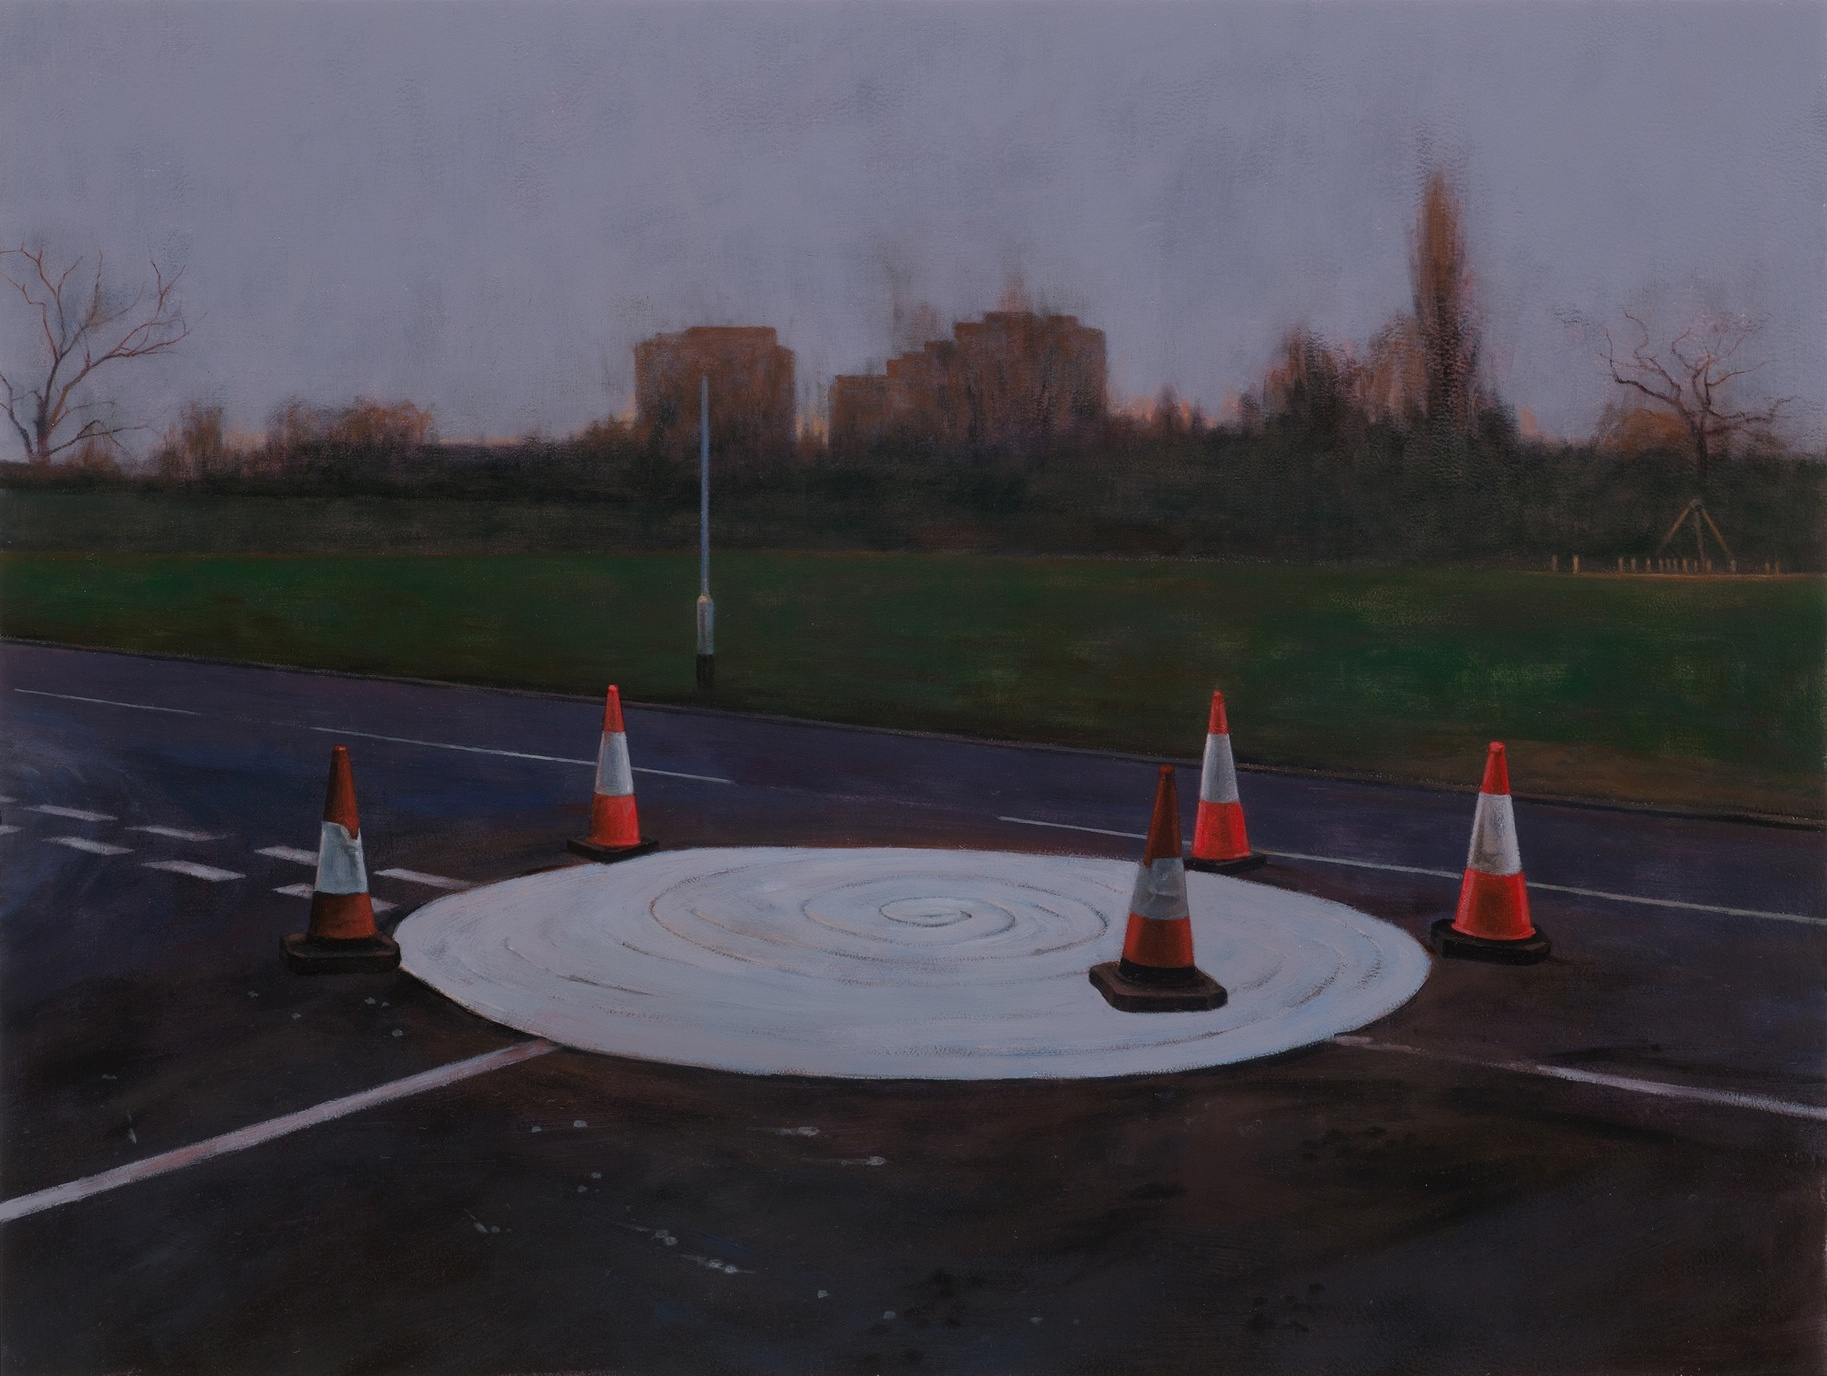 George Shaw, Somewhere in the Midlands, 2014 (Photo: © the artist, courtesy Wilk